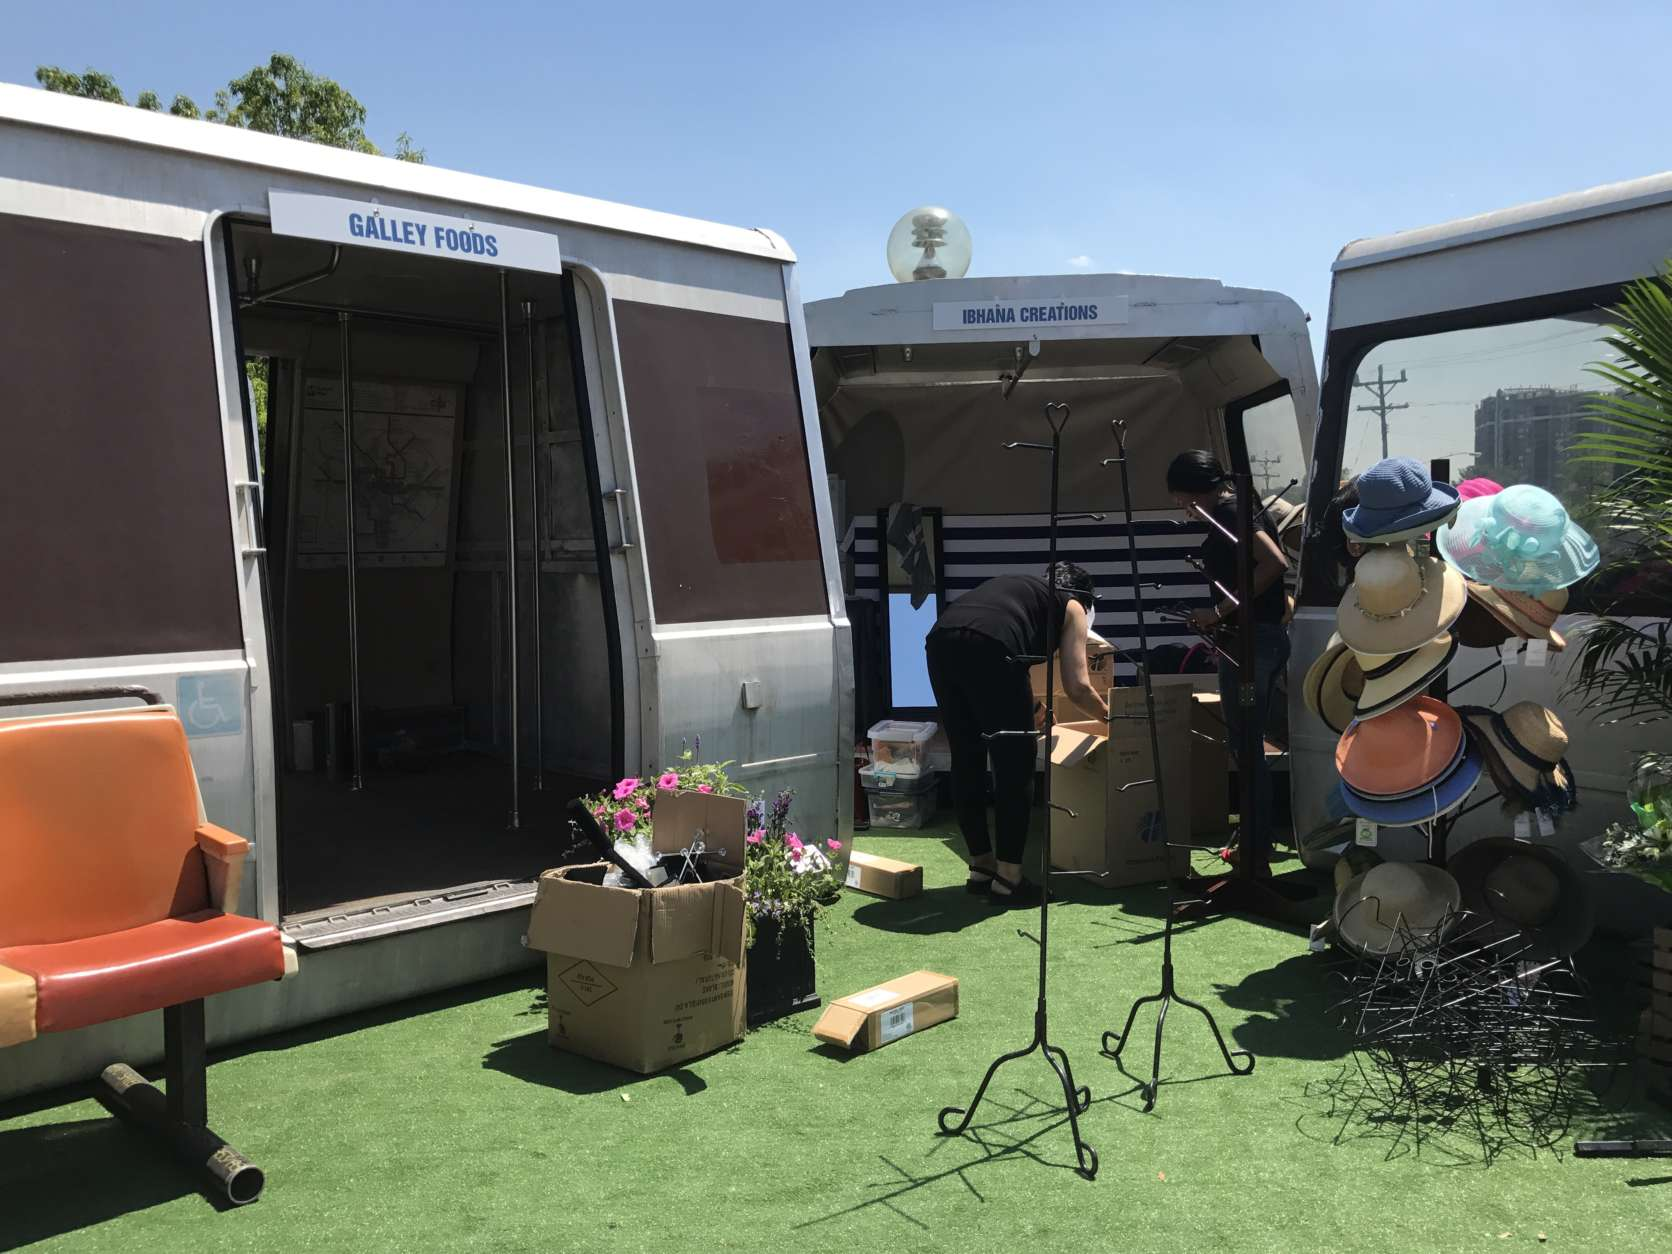 The vendors will set up shop every Wednesday, Thursday and Friday from 3:30 to 7:30 p.m. from May 17 to June 30. (Courtesy Fivesquares Development)